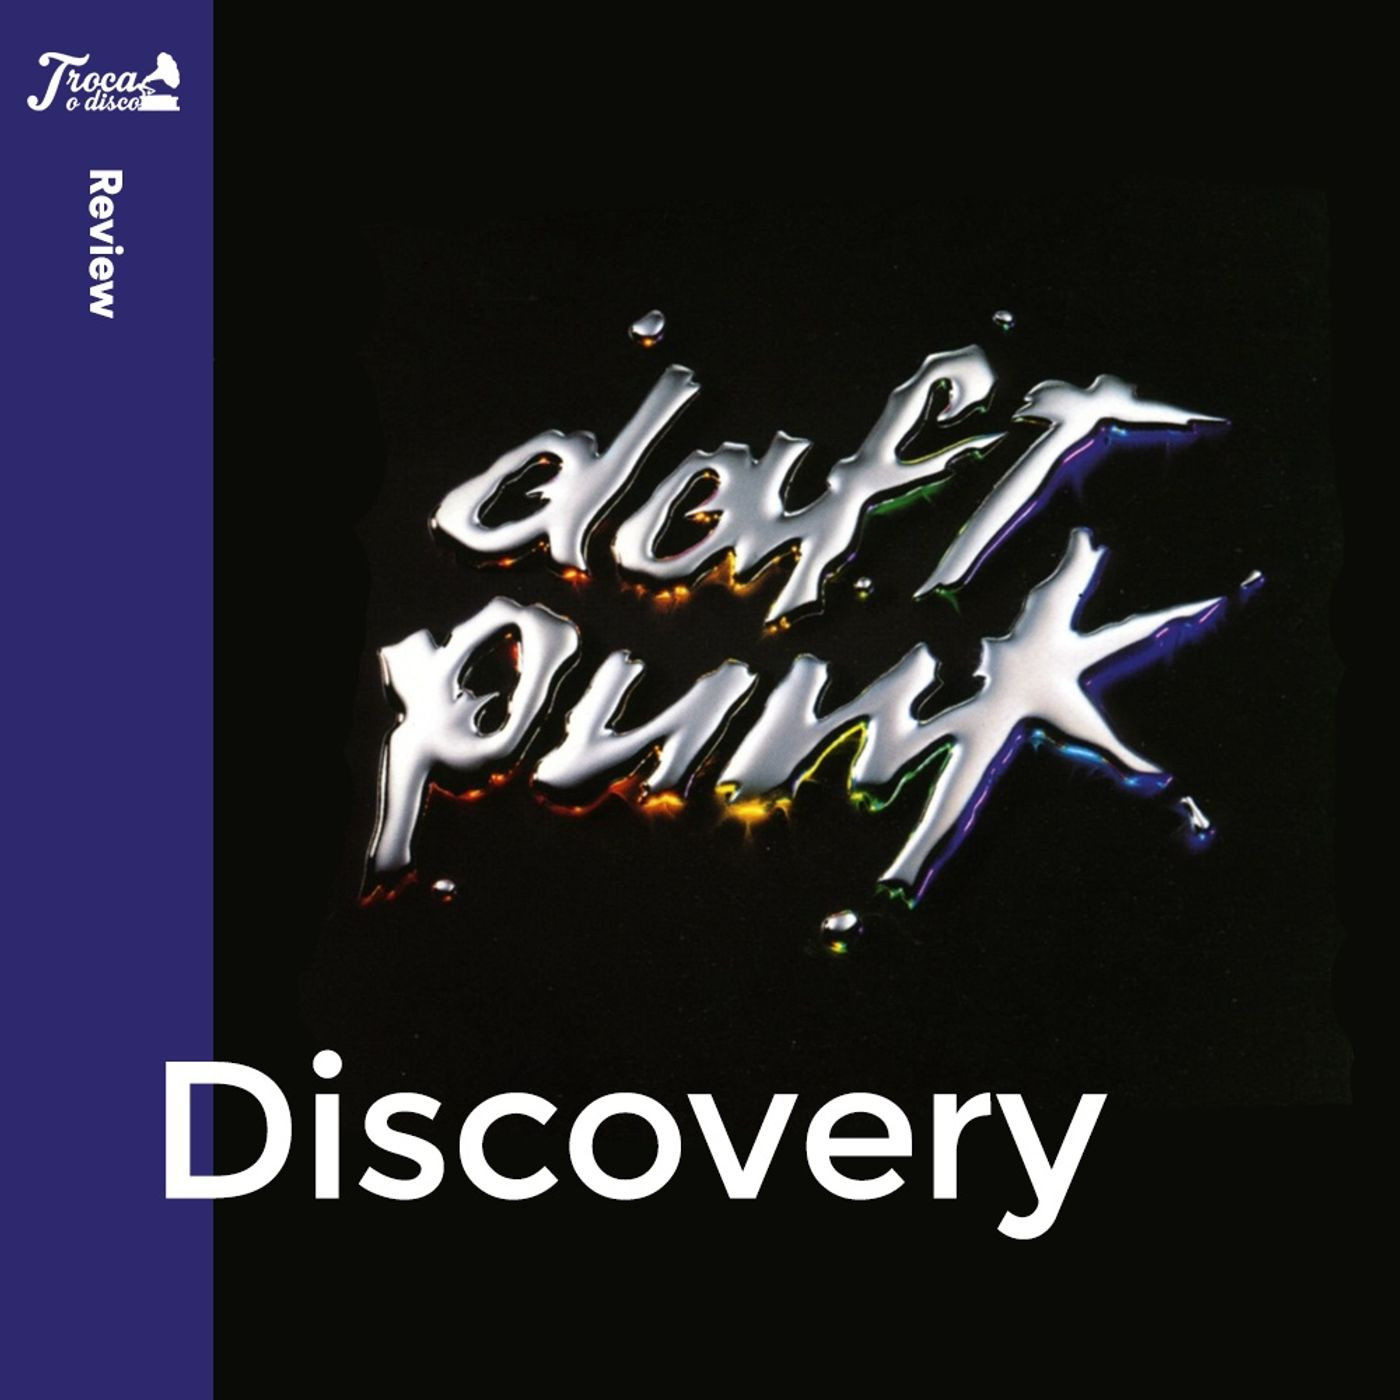 Album Review #67: Daft Punk - Discovery